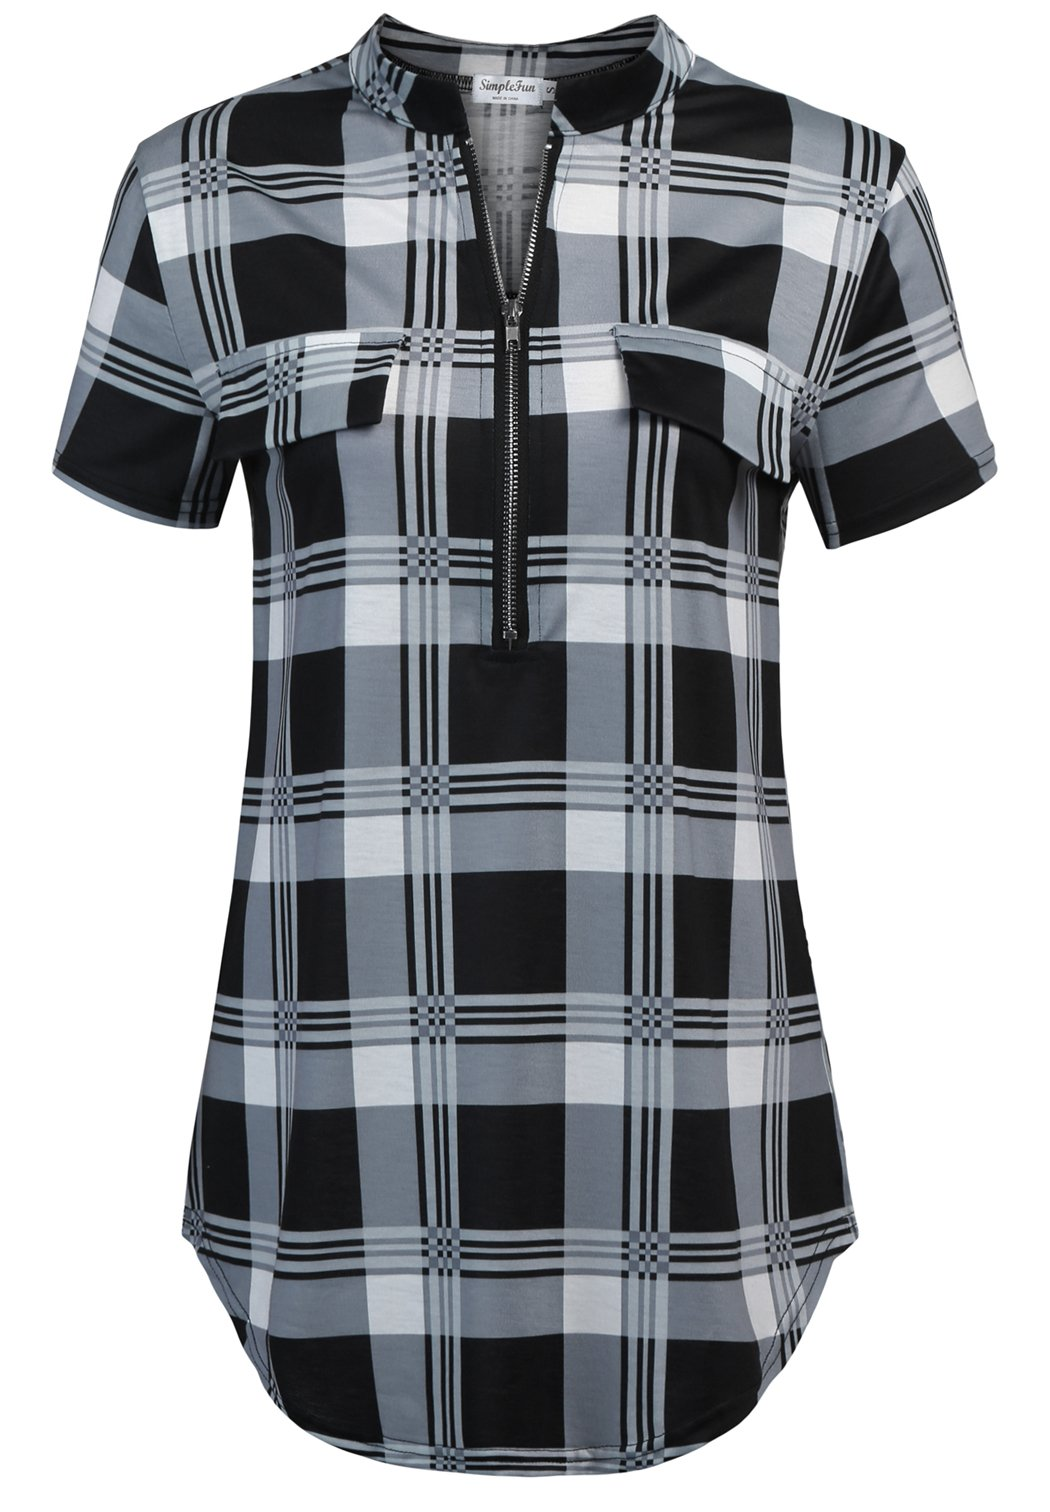 SimpleFun Plus Size Casual Blouses for Women,Short Sleeve Plaid Printed Zip up Shirts Top (Black Plaid,XXL)